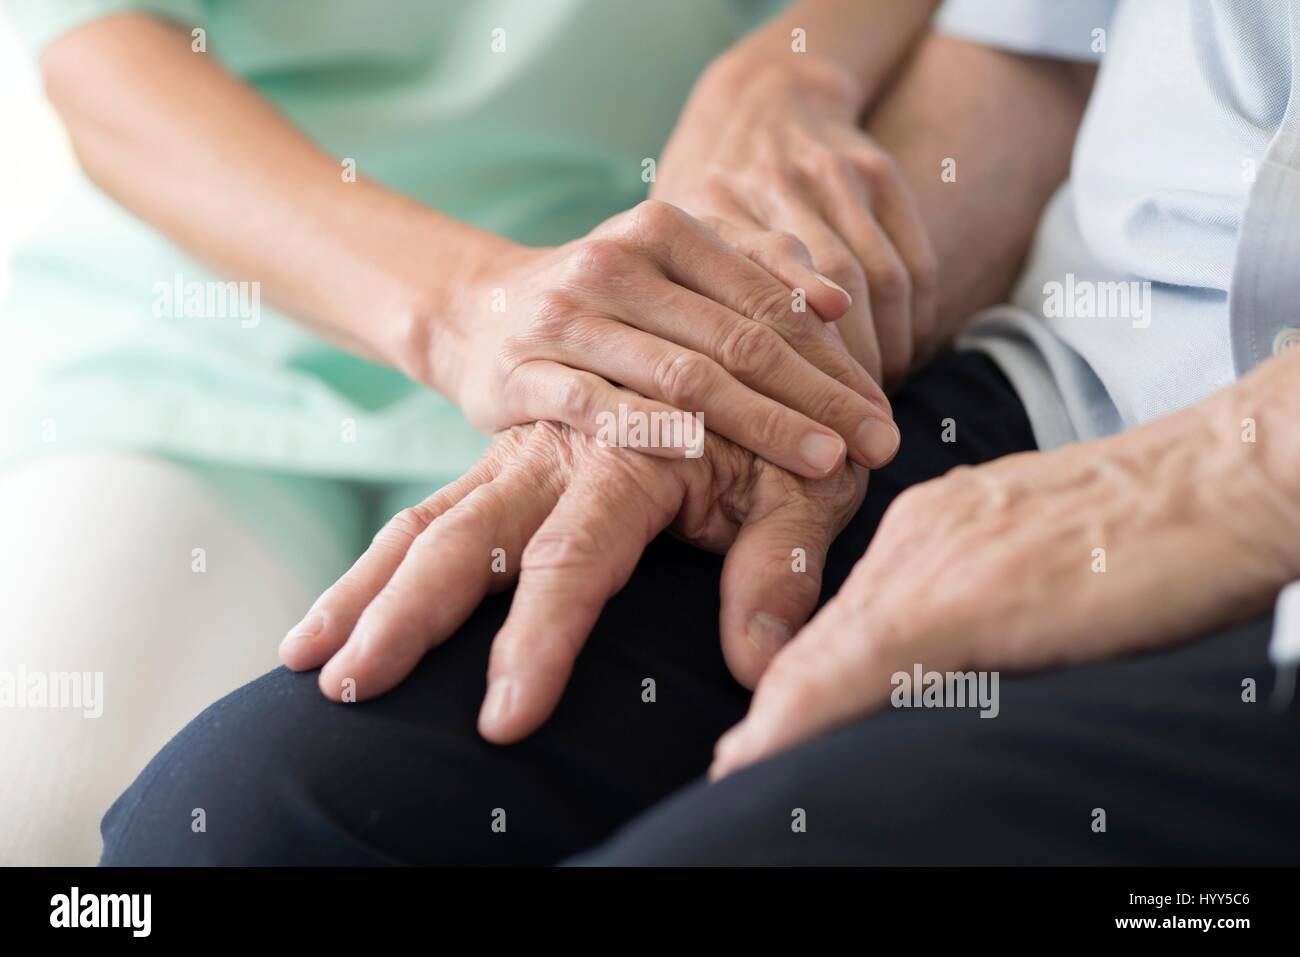 Care worker holding senior man's hands. - Stock Image